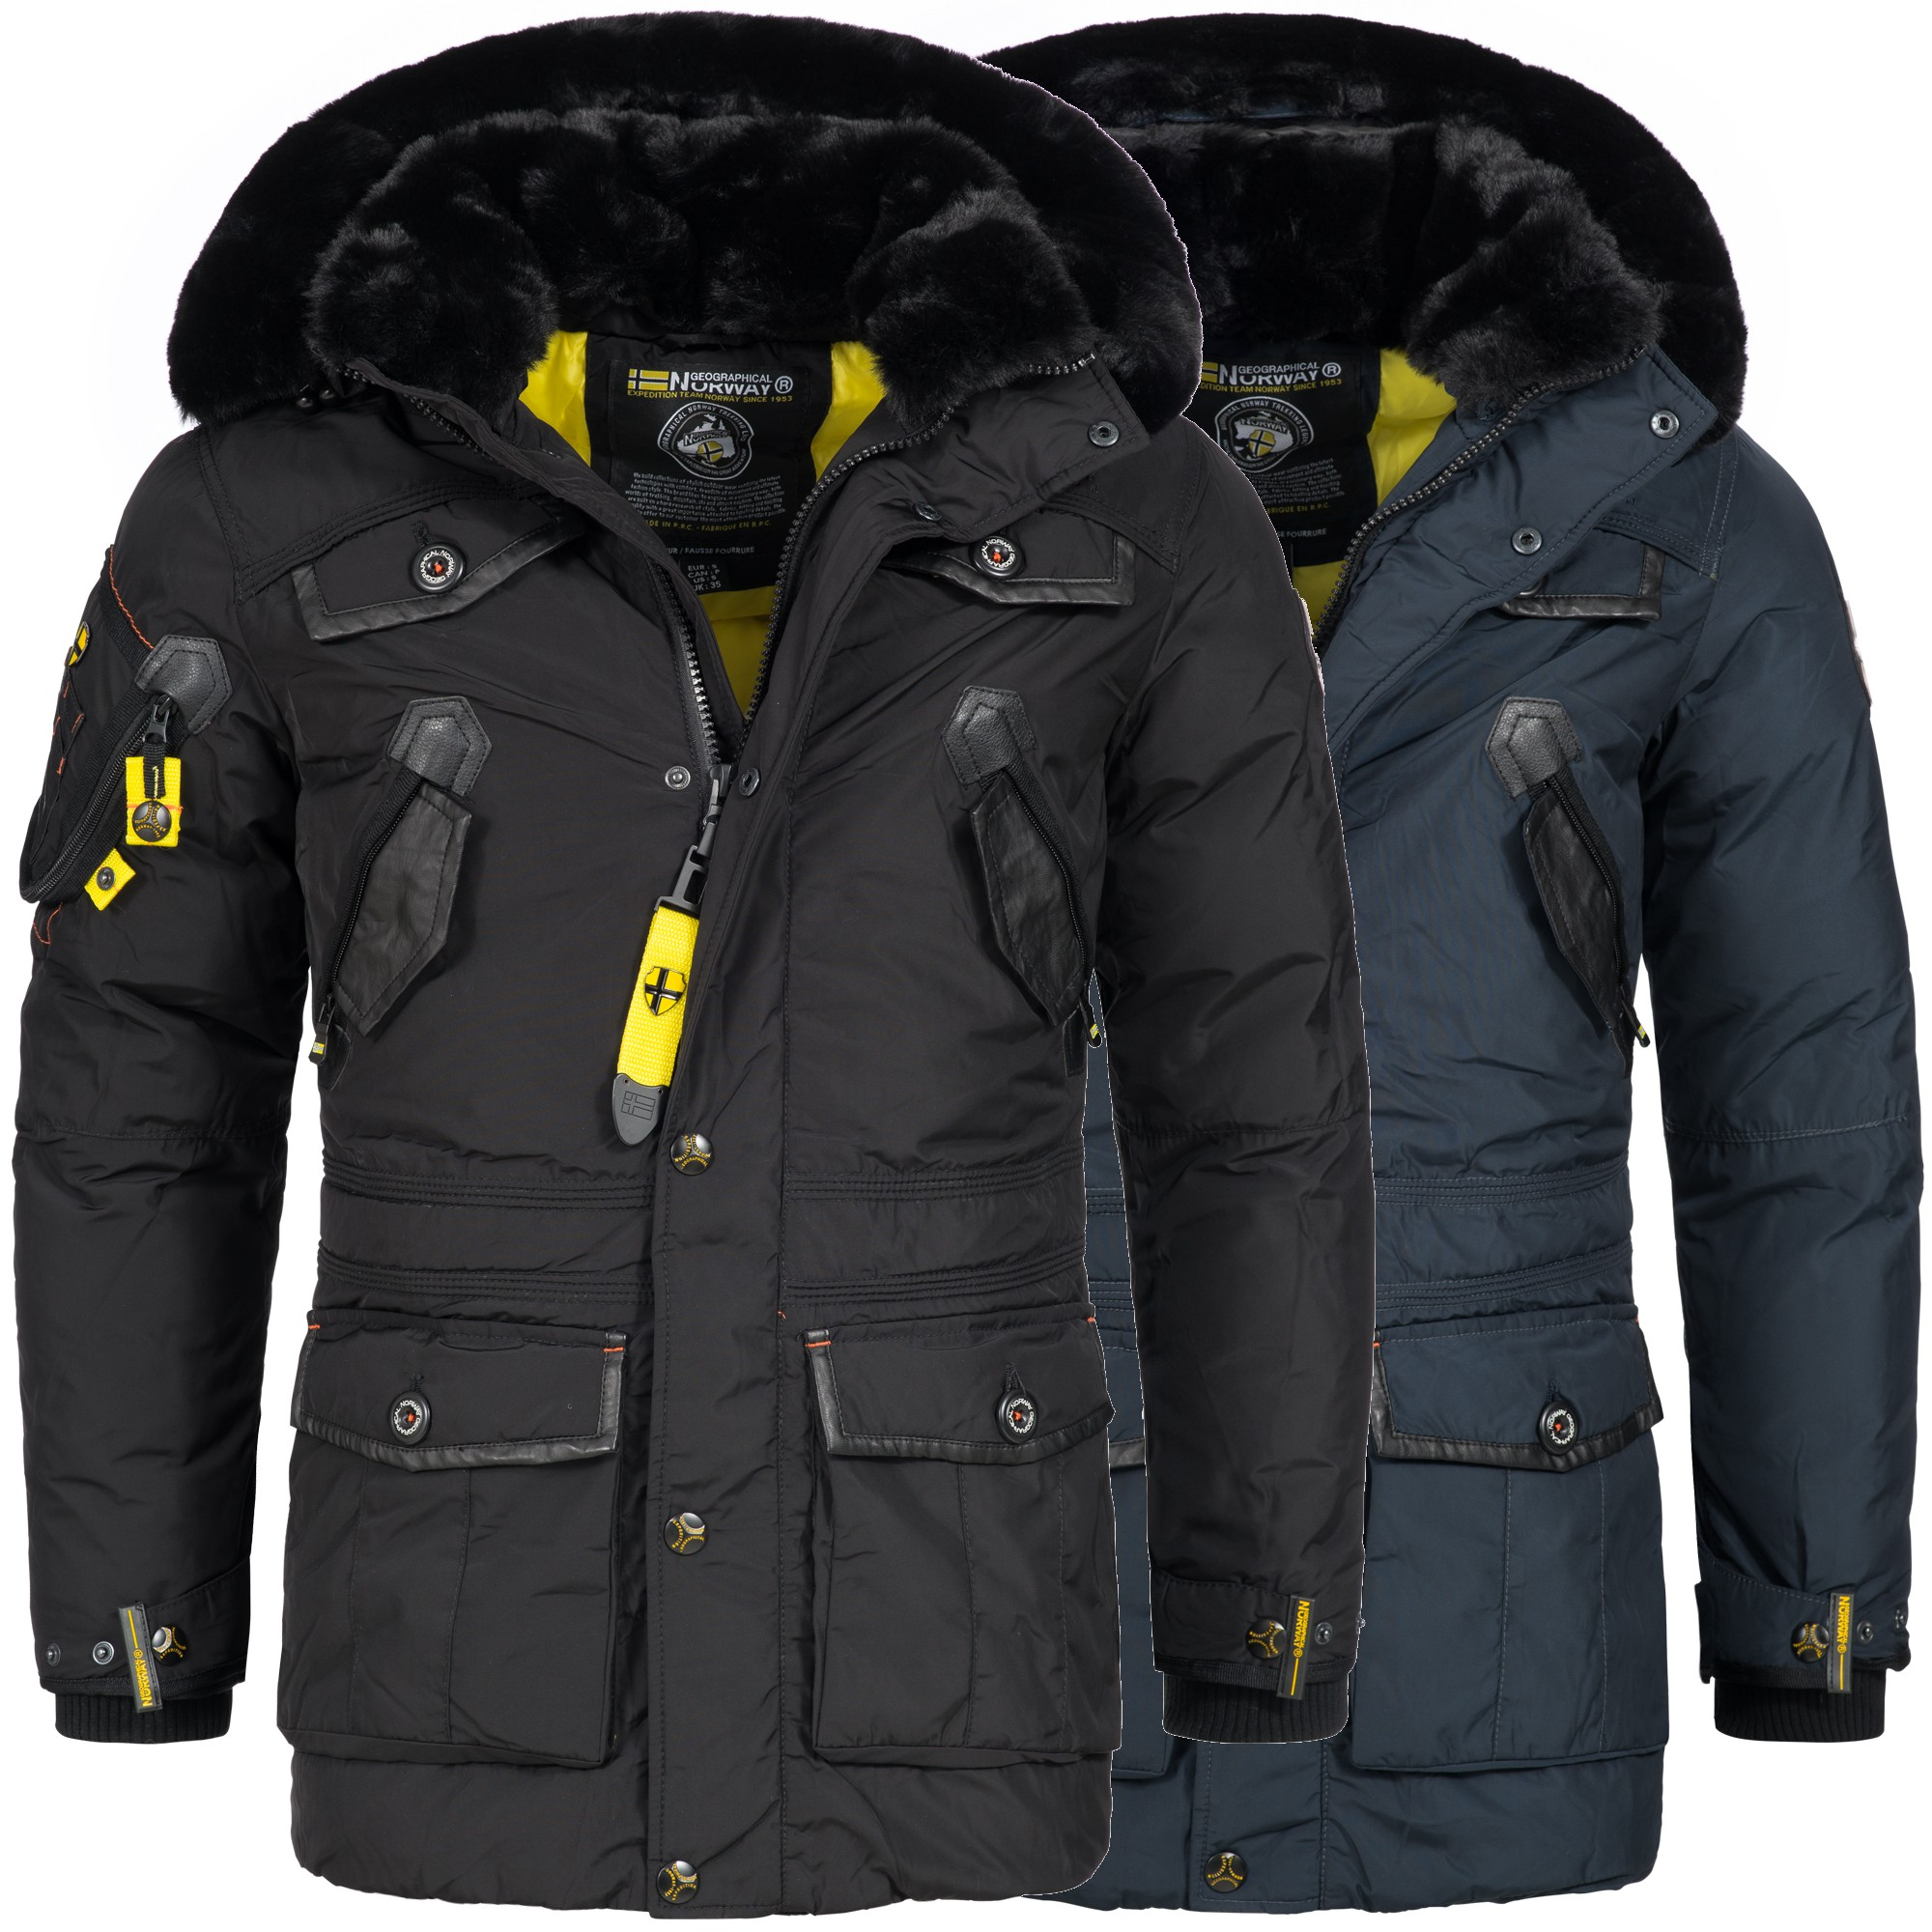 geographical norway acore herren luxus winterjacke parka ski jacke warm s xxxl ebay. Black Bedroom Furniture Sets. Home Design Ideas